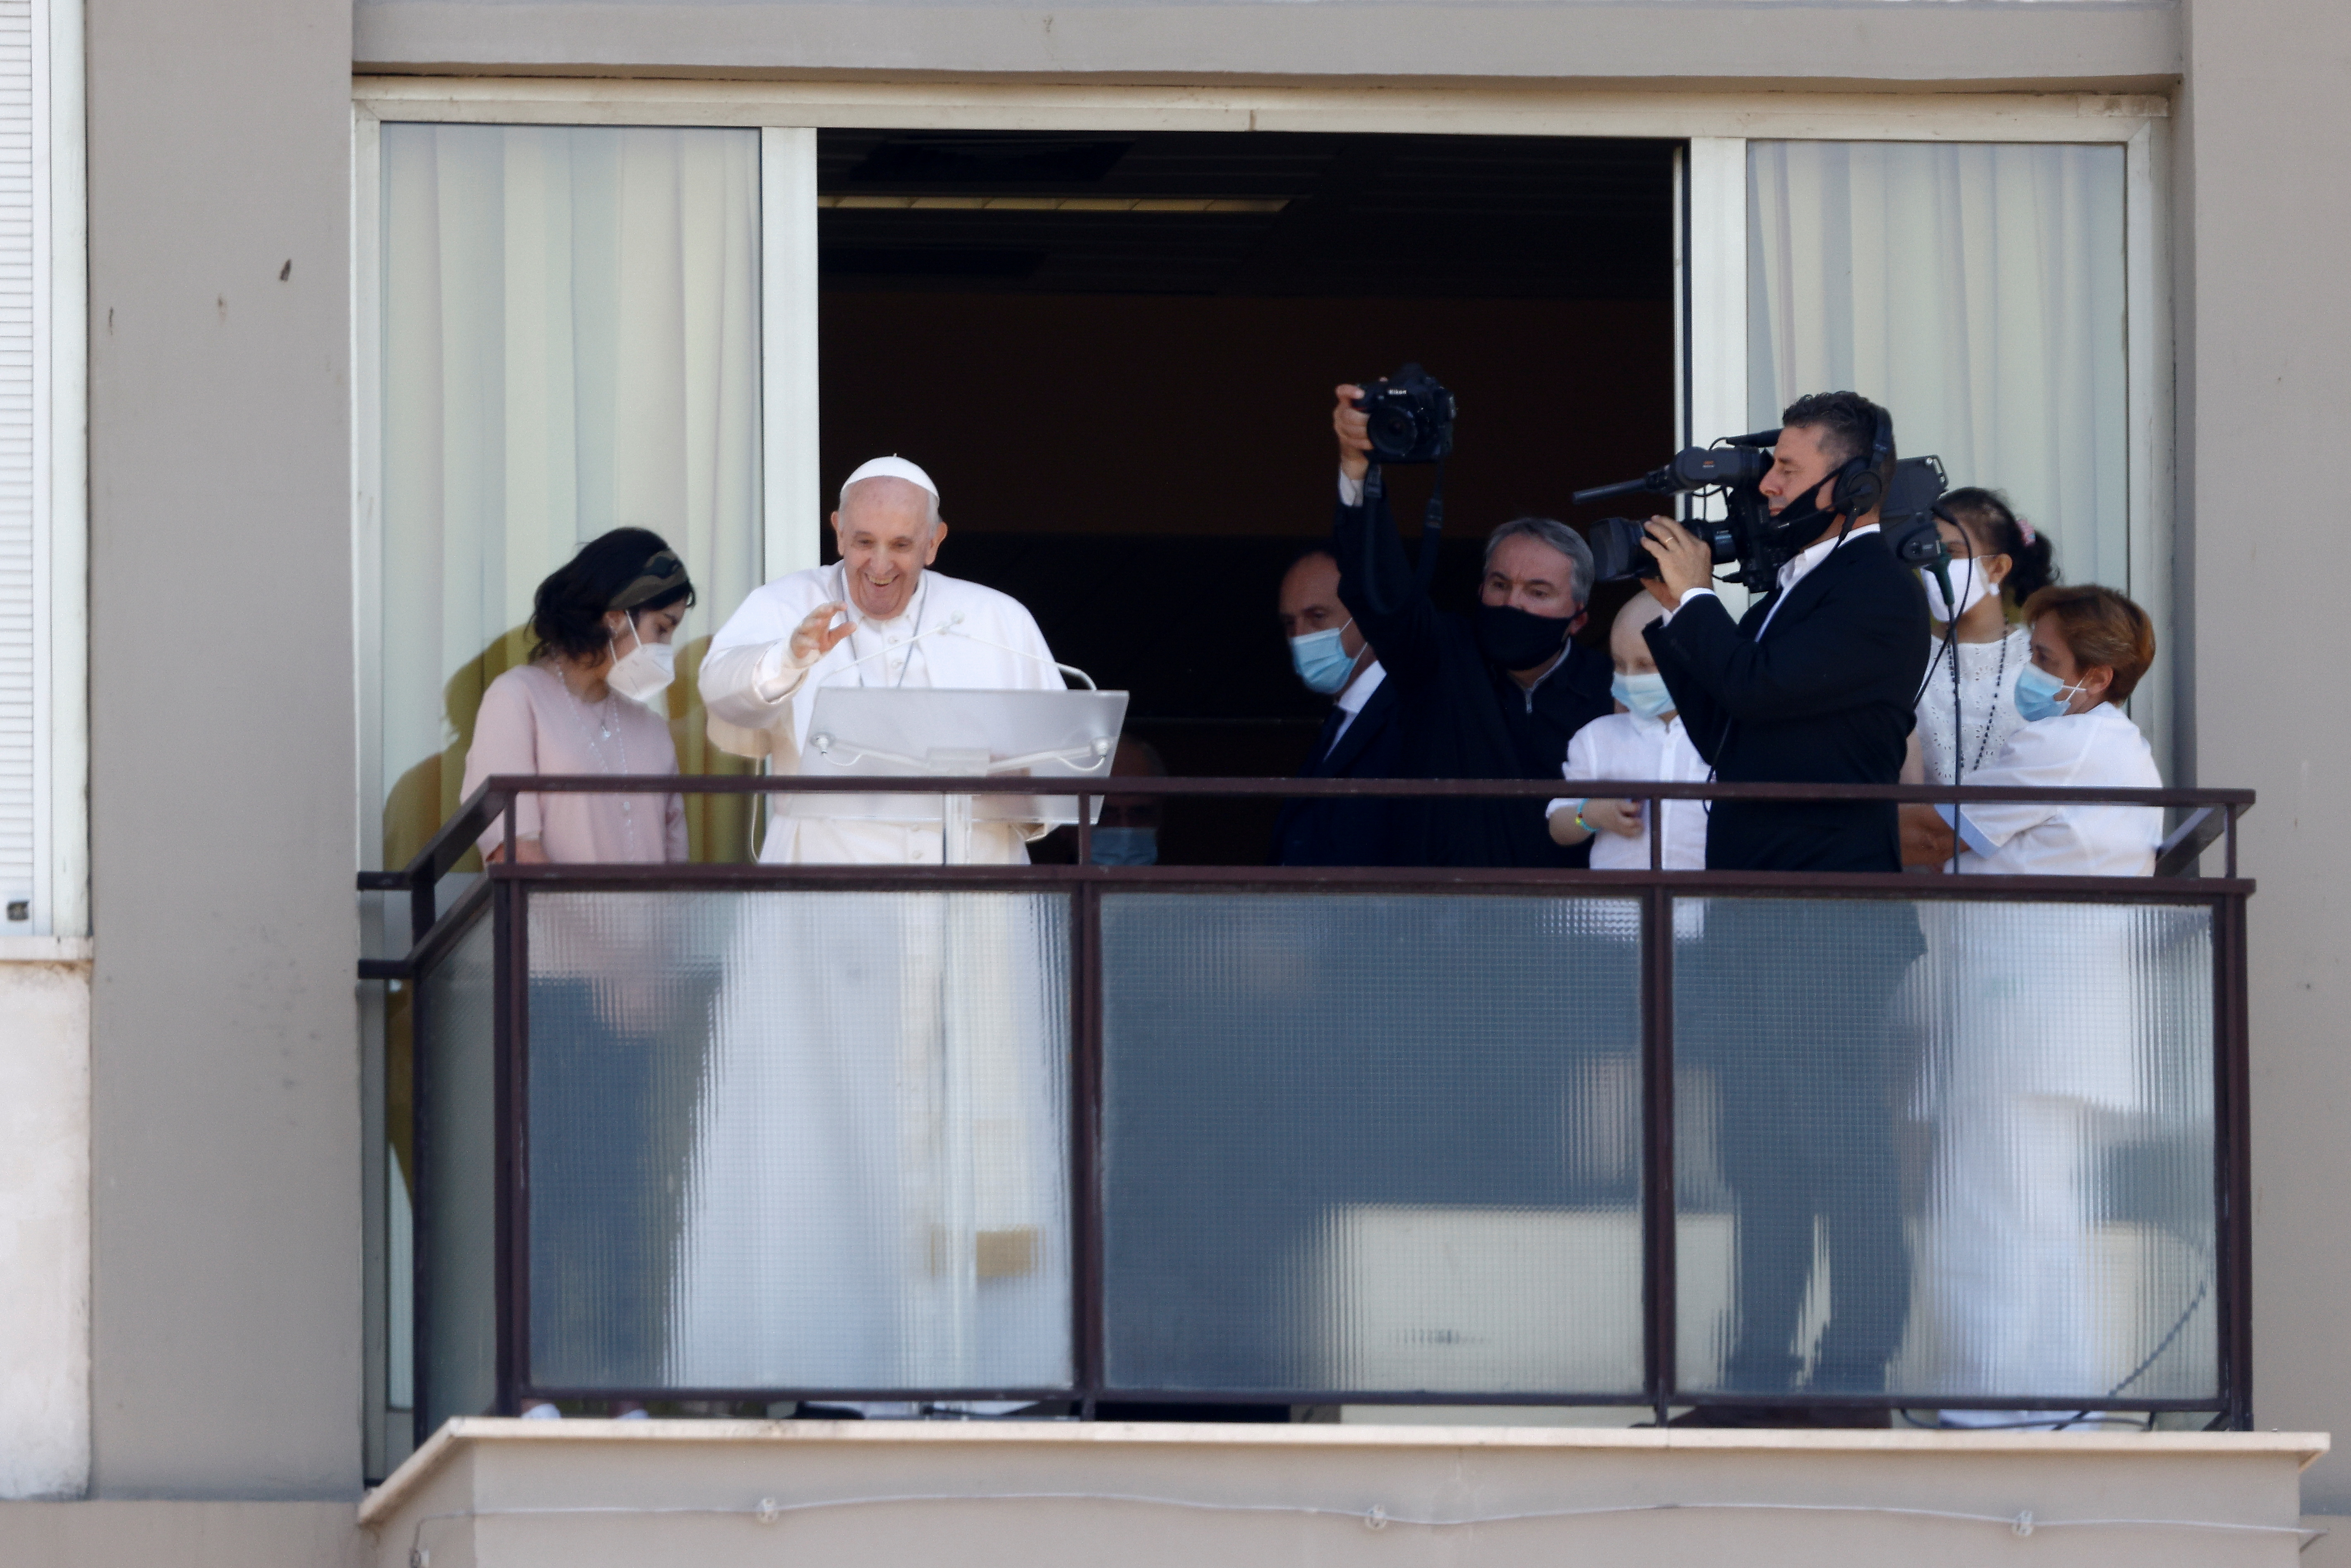 Pope Francis leads the Angelus prayer from a balcony of the Gemelli hospital, as he recovers following scheduled surgery on his colon, in Rome, Italy, July 11, 2021. REUTERS/Guglielmo Mangiapane